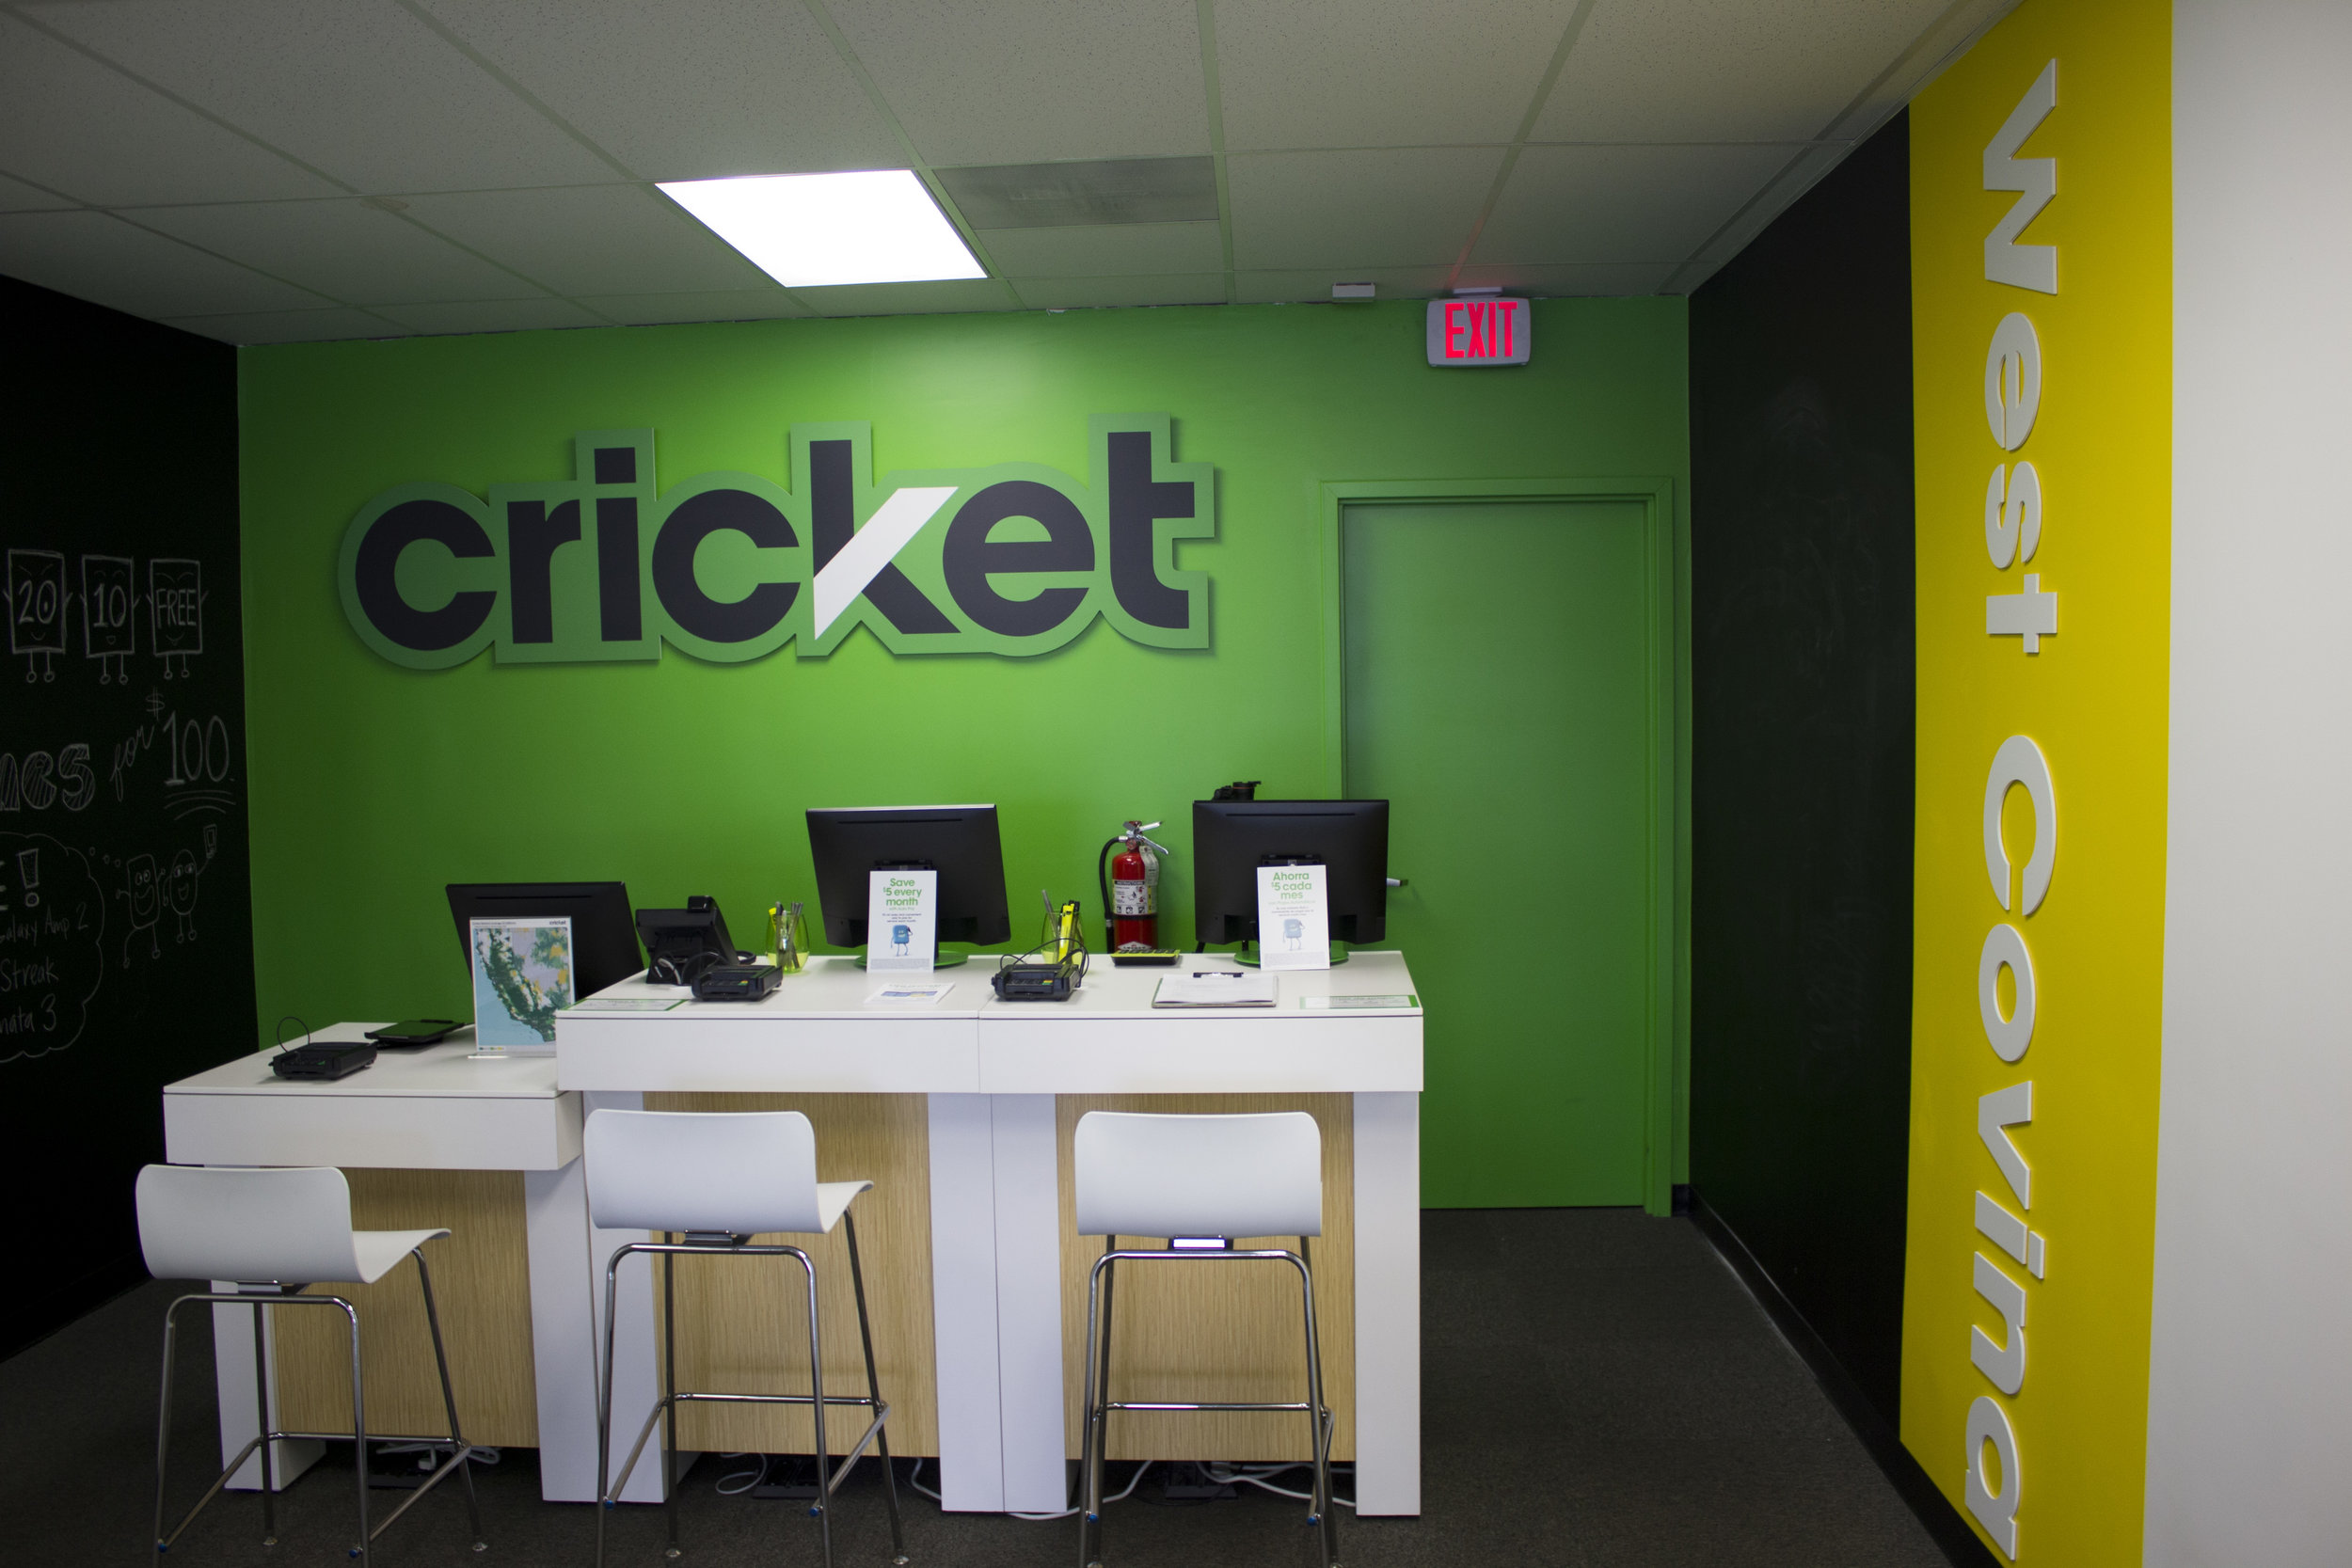 cricket store inside shot 2.jpg